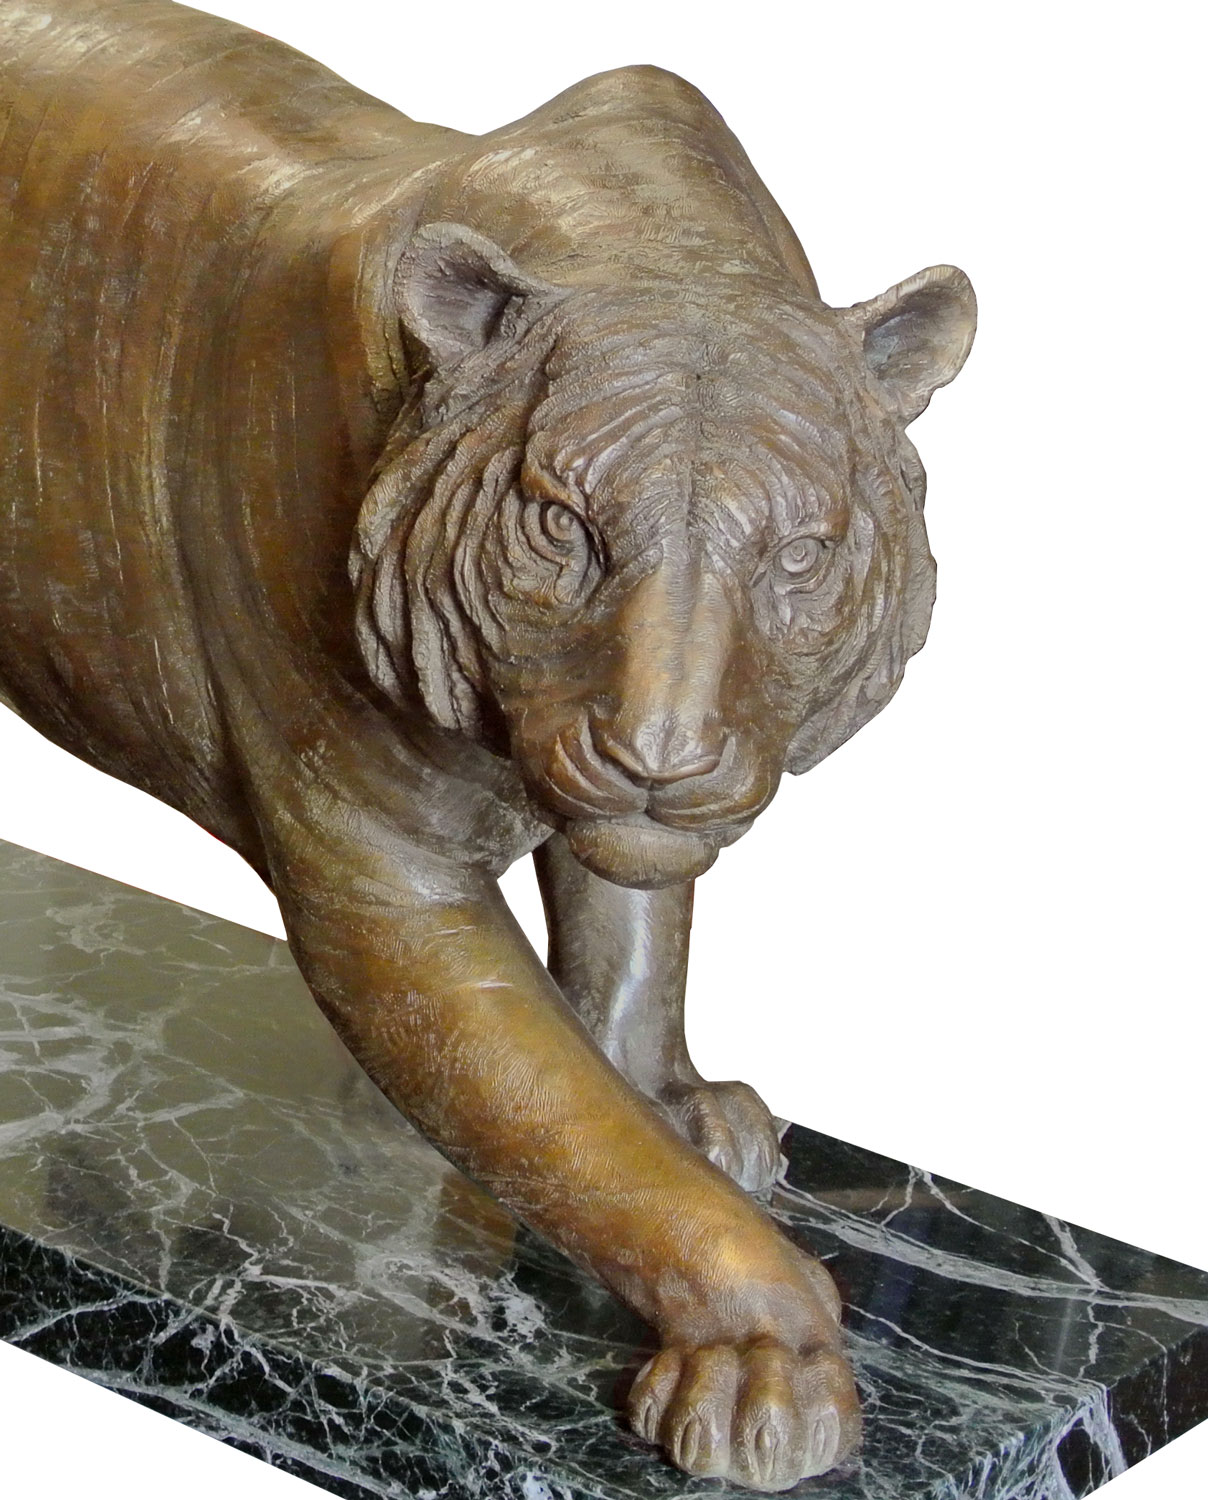 Tiger original work of art by Eleonora villani. Bronze sculpture for sale, Pietro Bazzanti Art Gallery, Florence, Italy